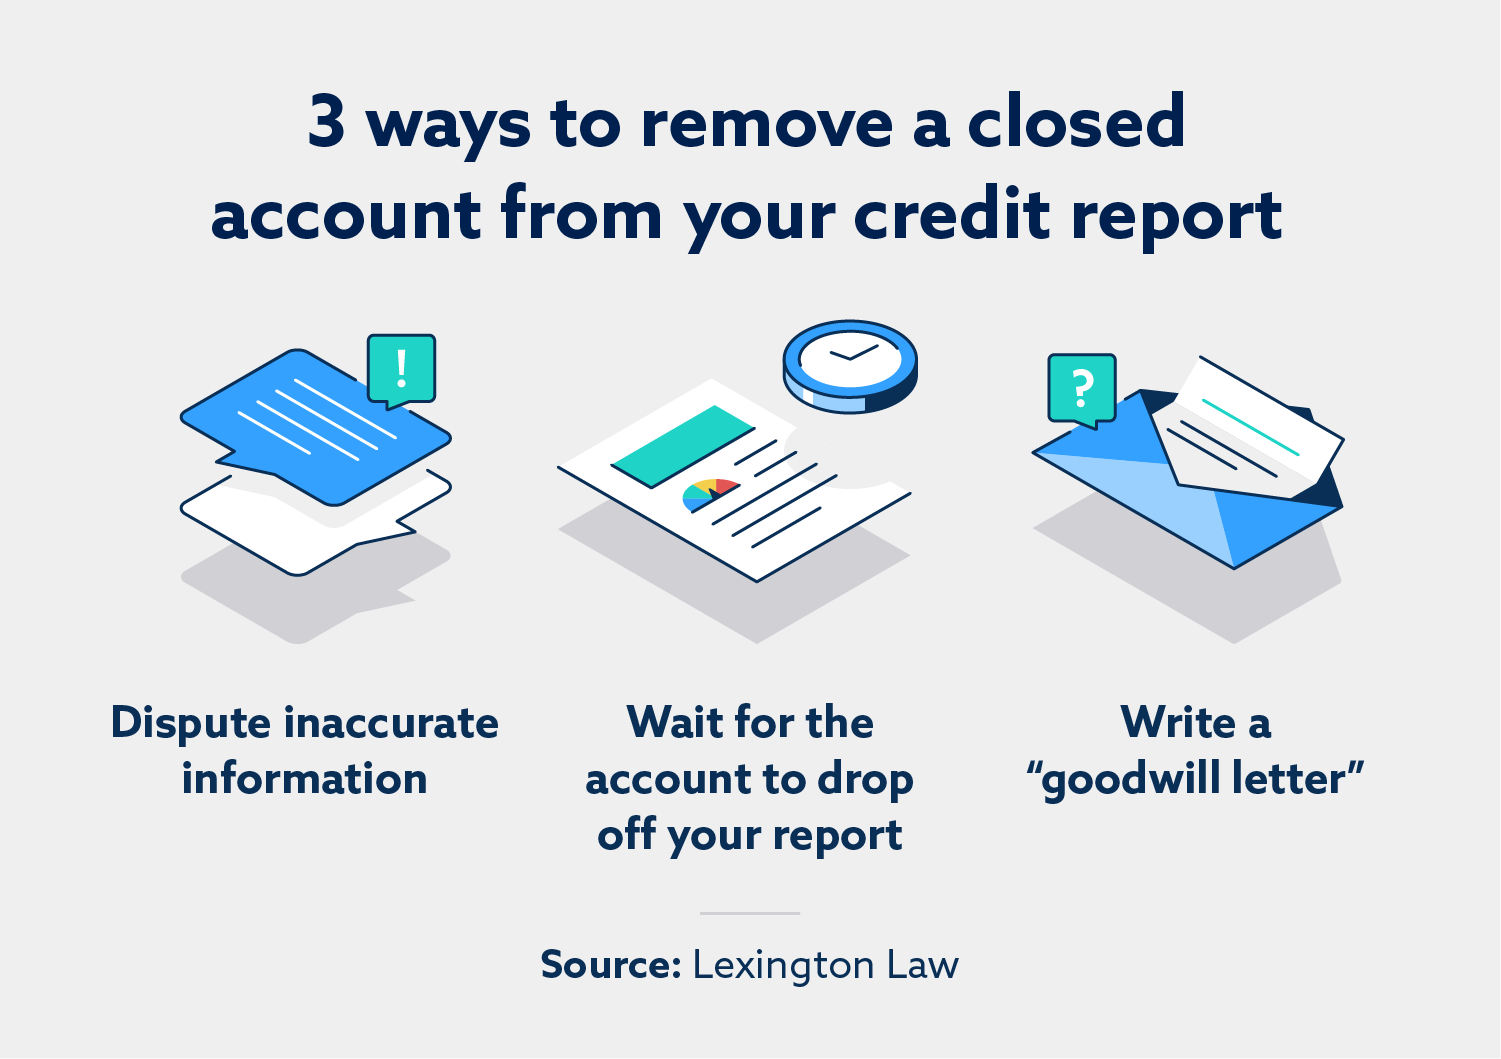 "Three ways to remove a closed account from your credit report: dispute inaccurate information, wait for the account to drop off your report, write a ""goodwill letter."""